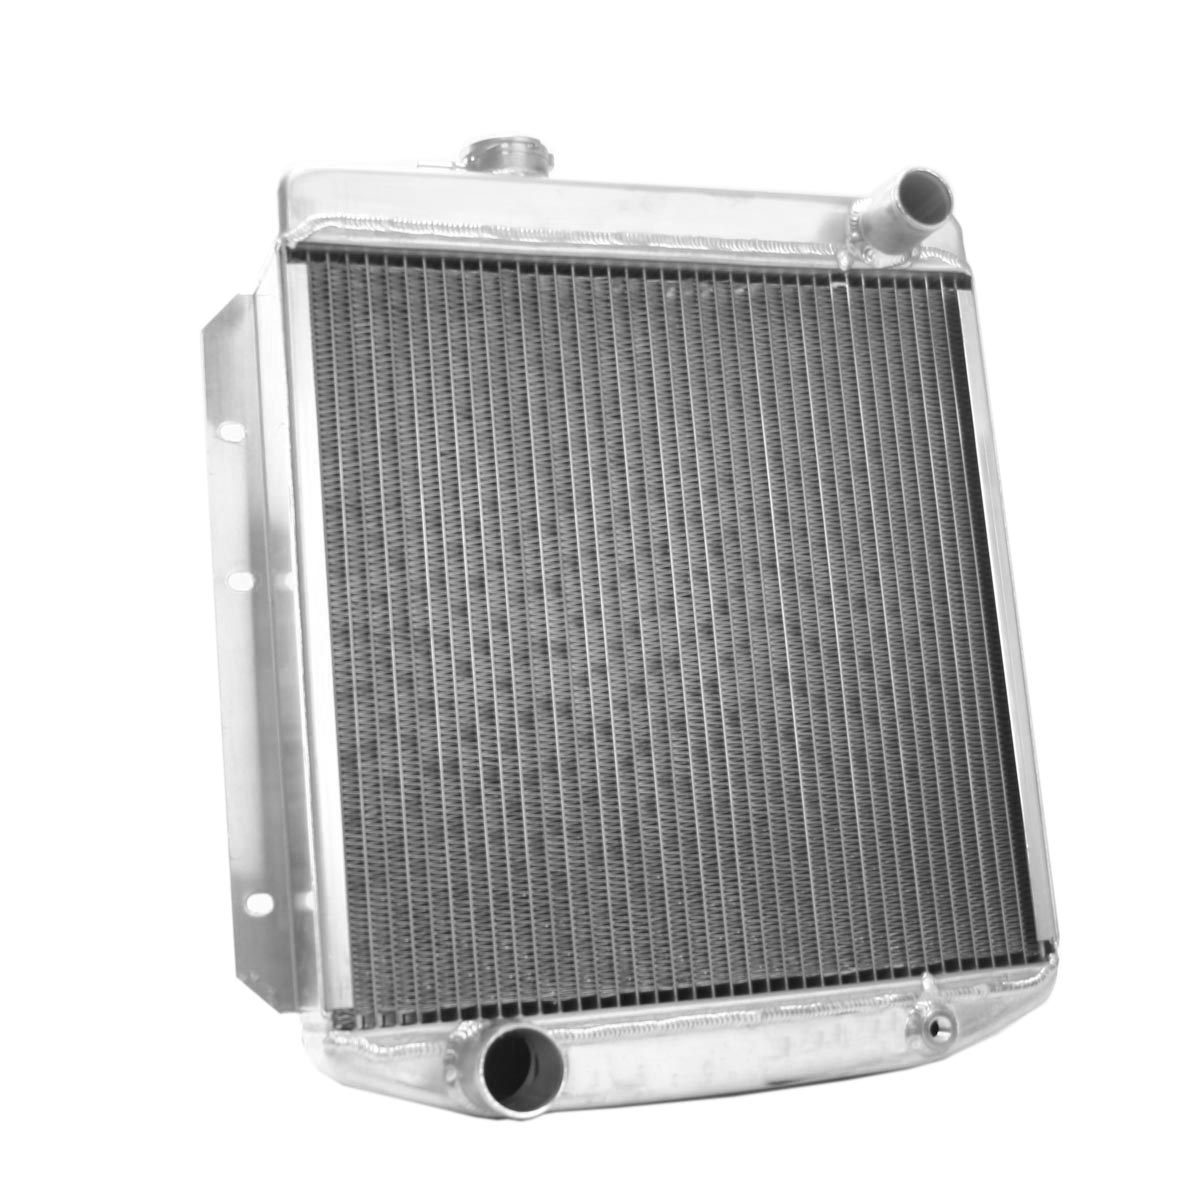 1963 Ford  Griffin Aluminum Radiator - Part Number 7-00035